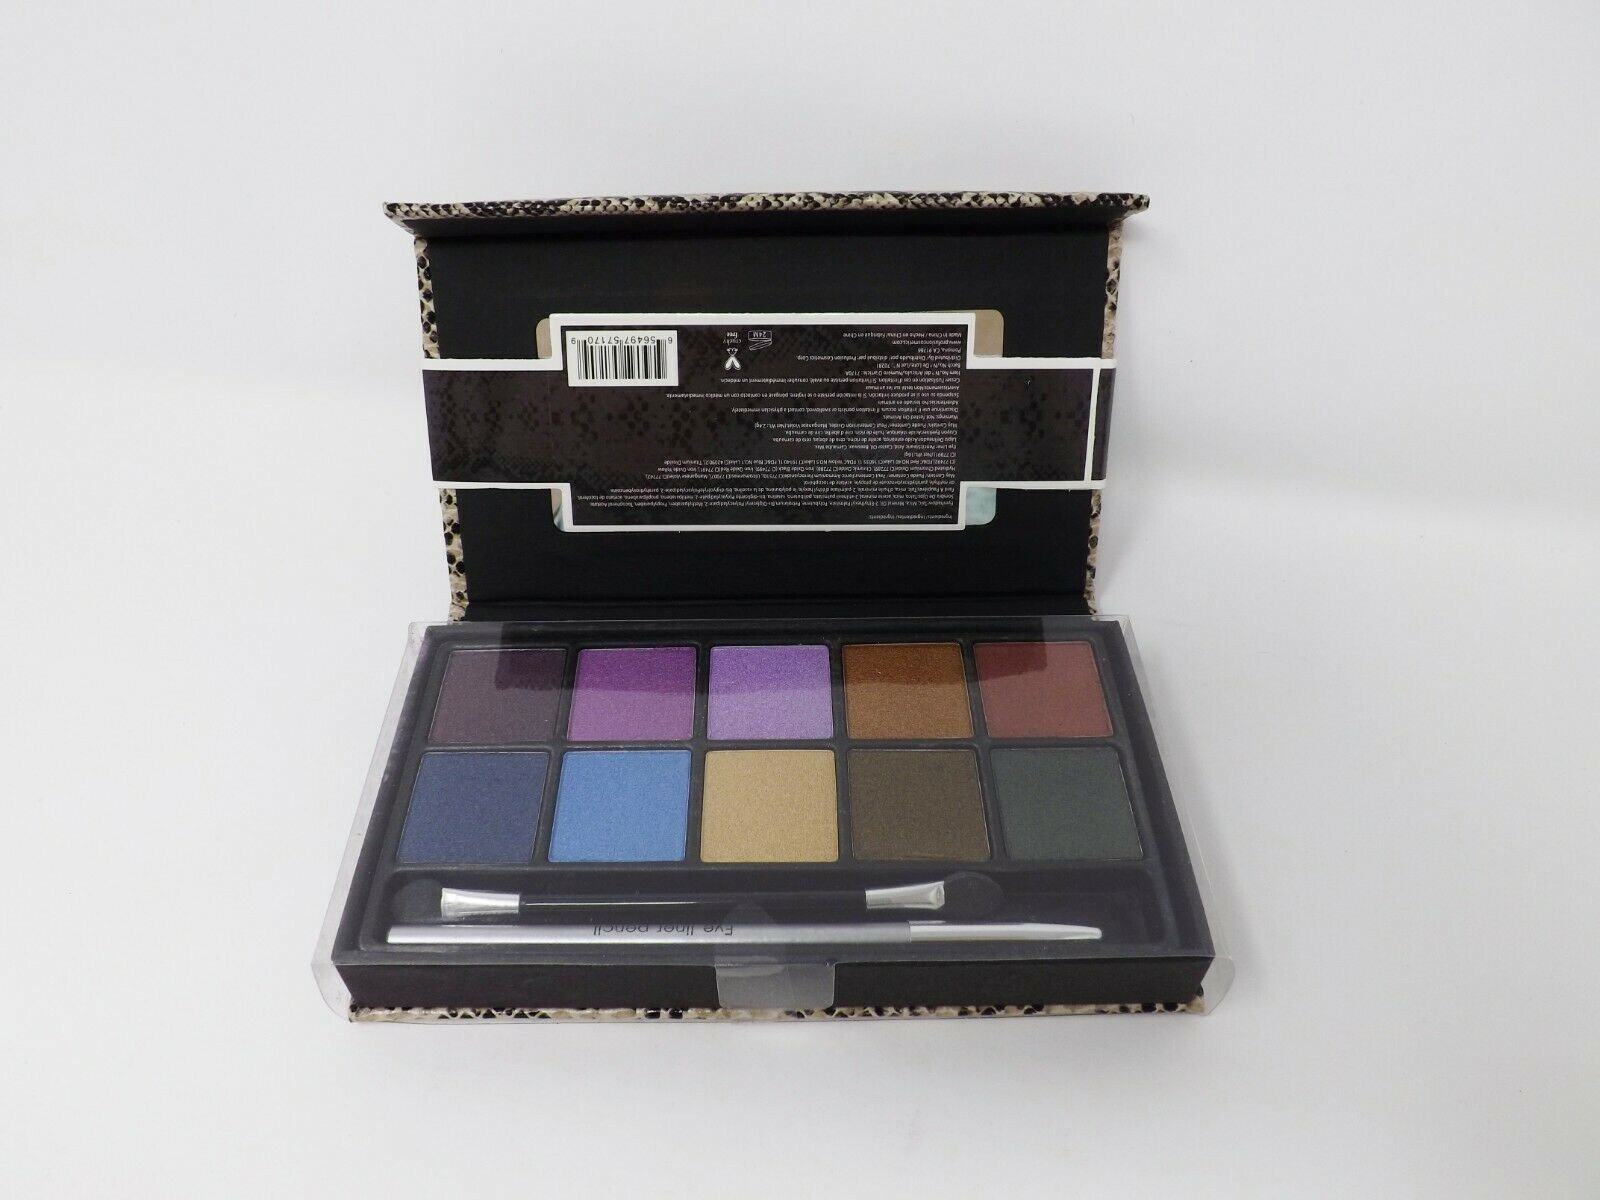 Profusion Stunning Eyes Shimmer 10 Color Eye Palette - New image 2